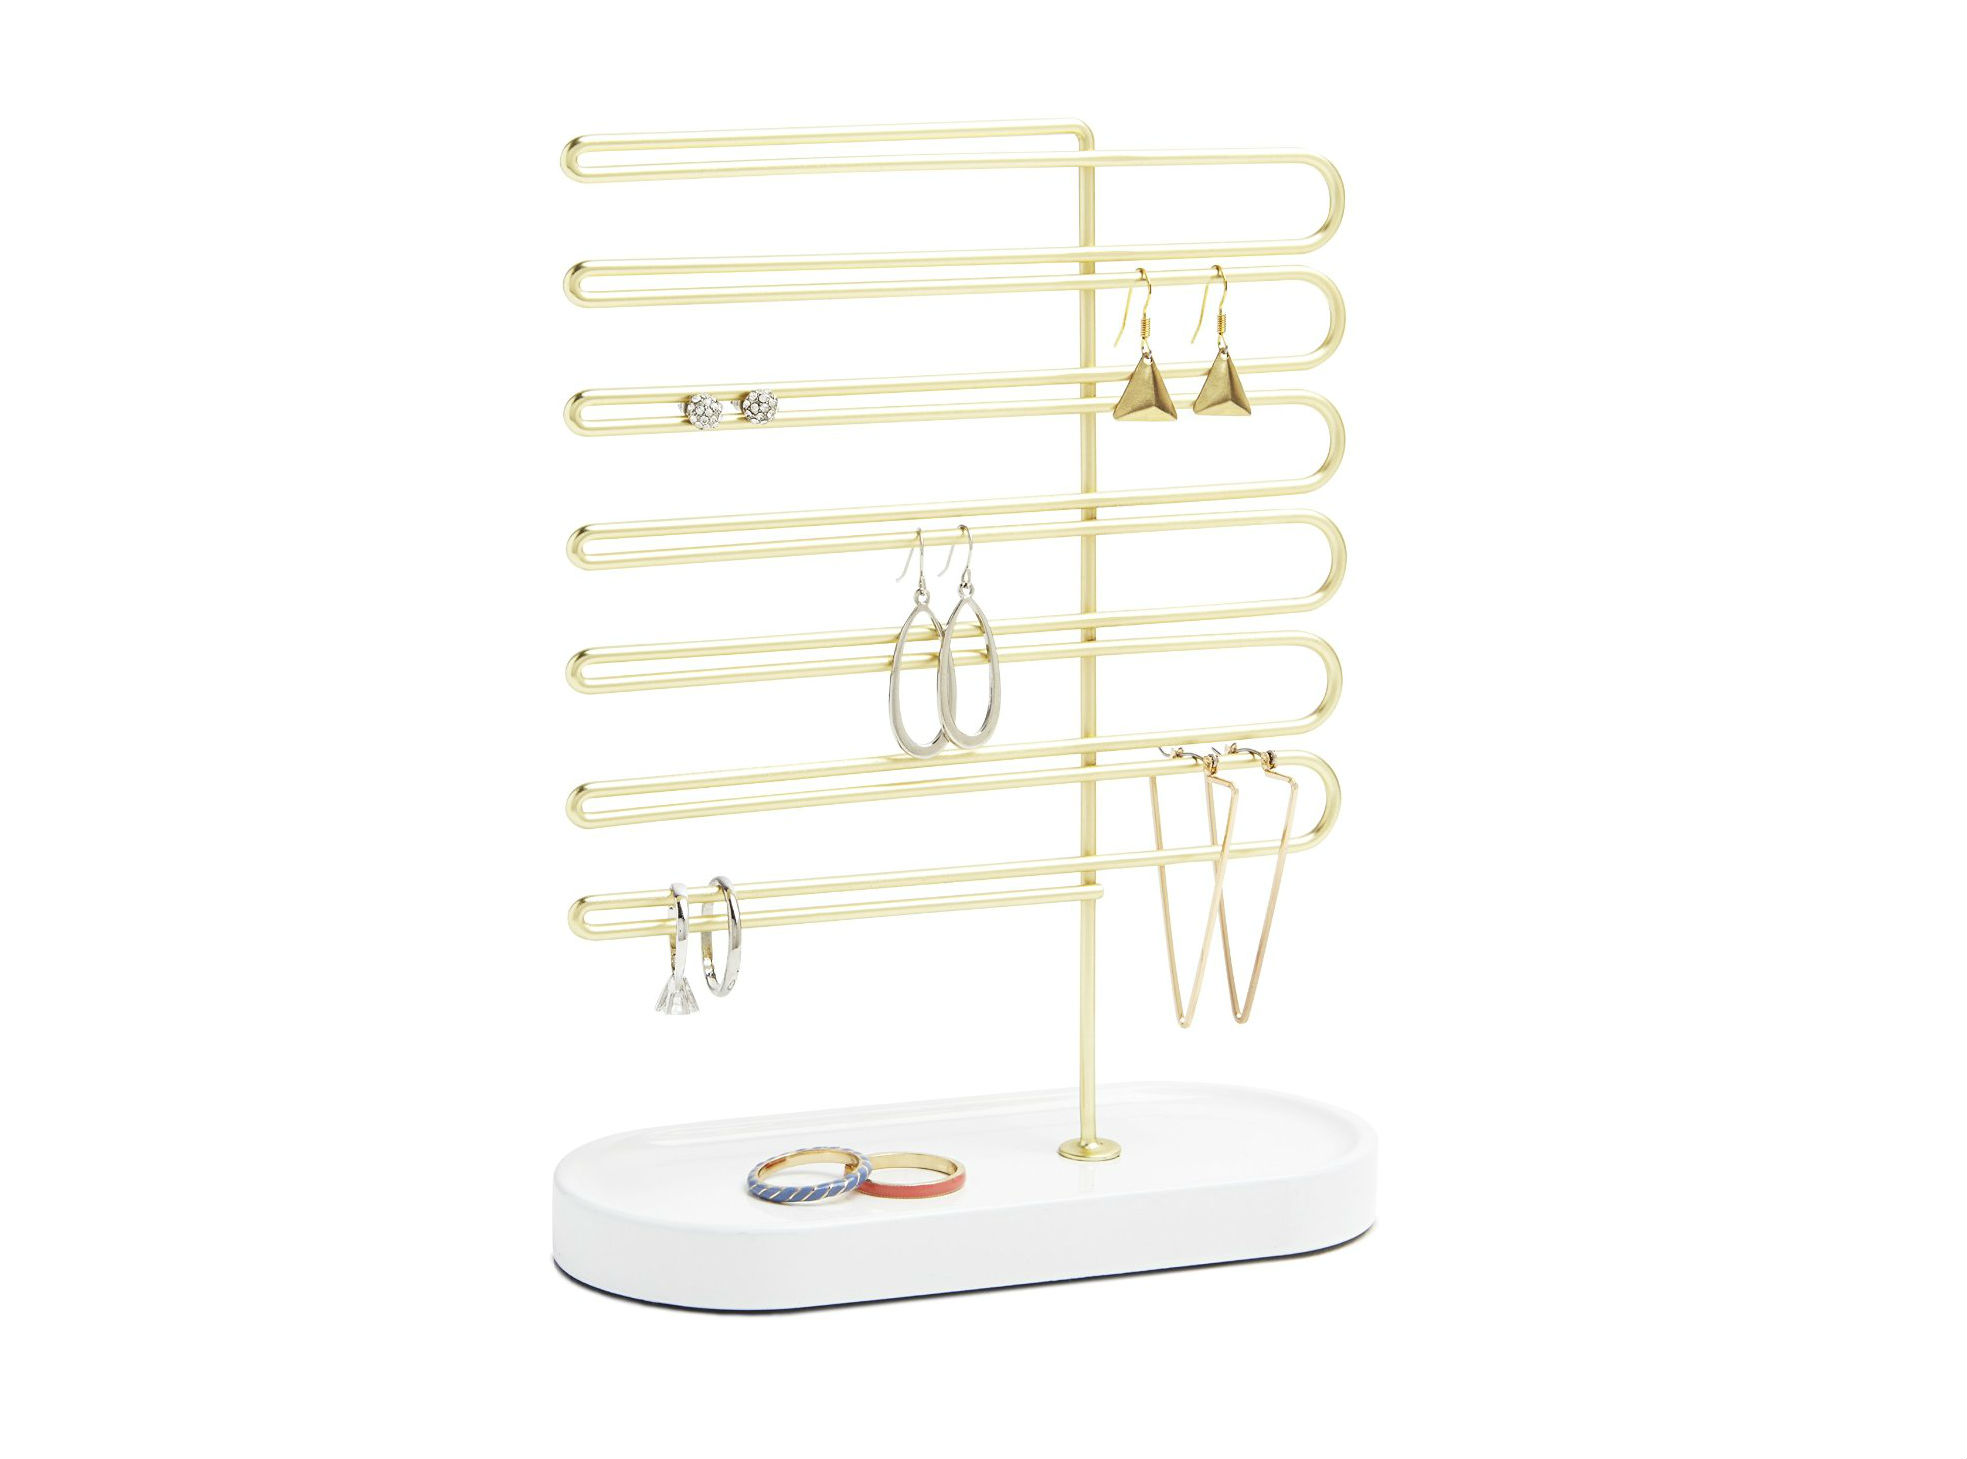 The Easiest Way to Organize Your Earrings